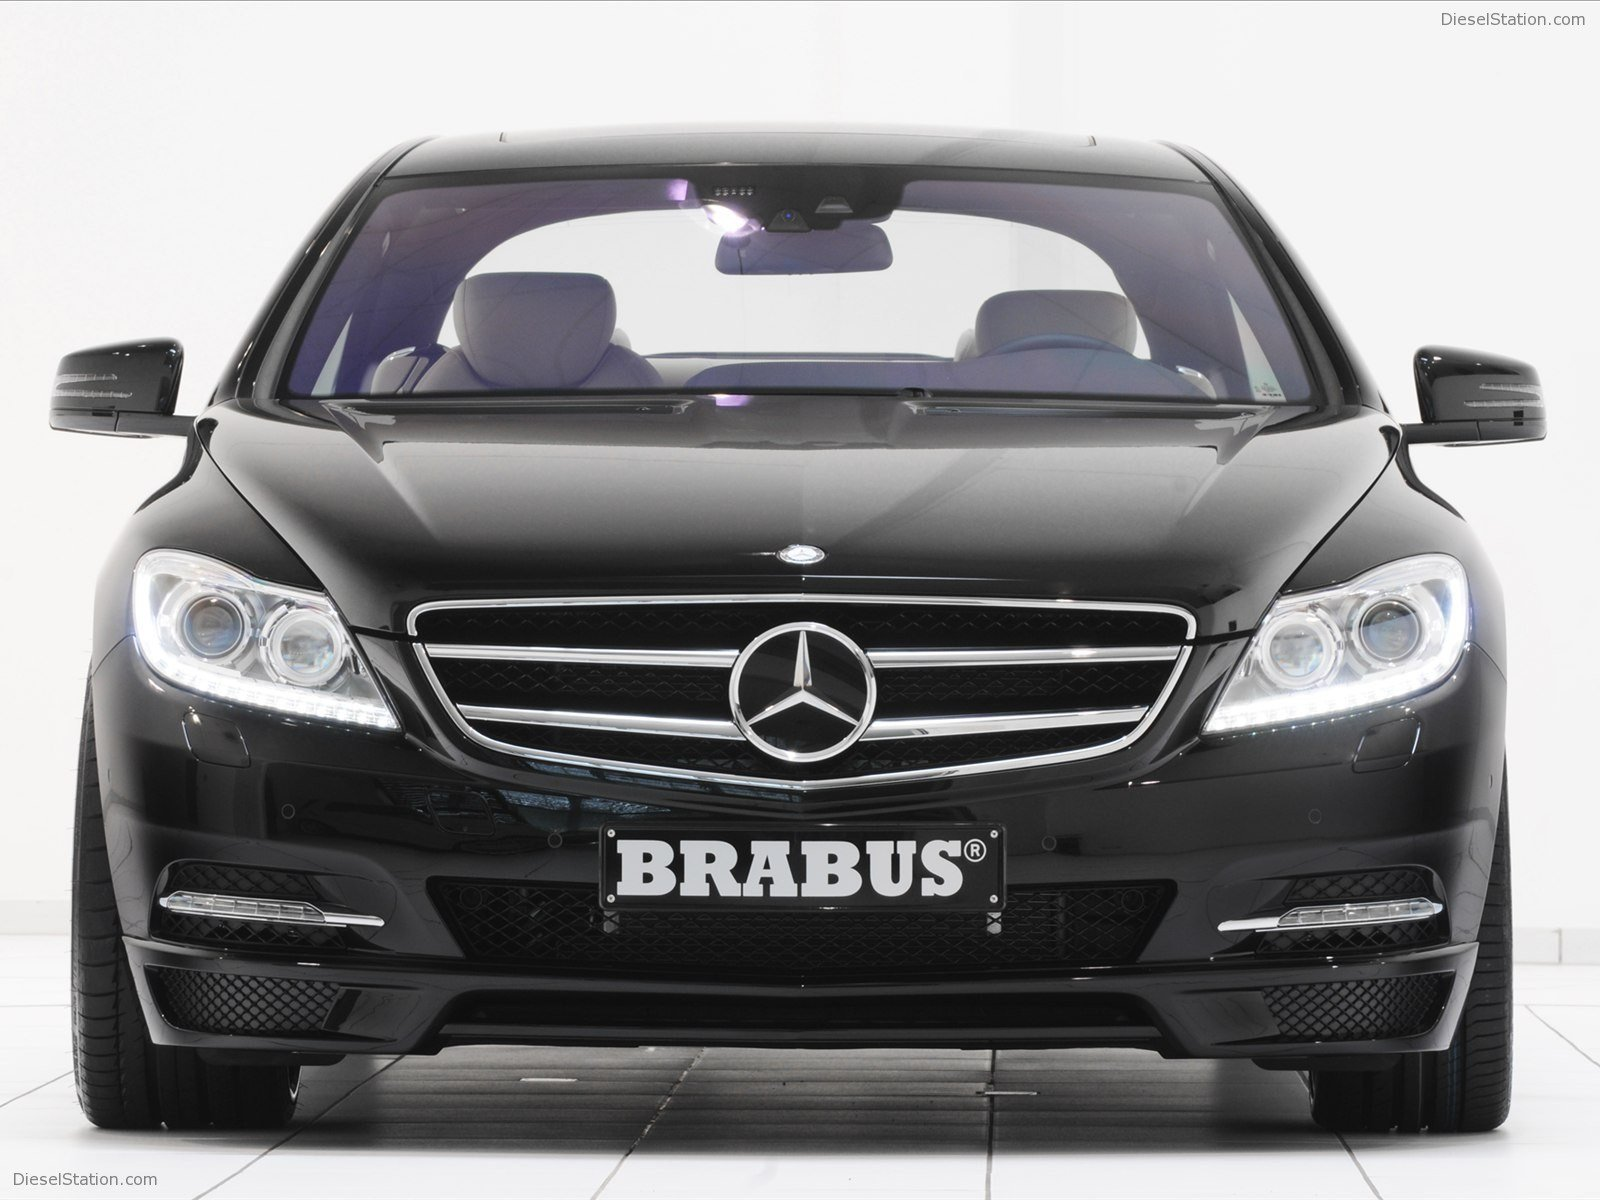 Latest Brabus Mercedes Cl Class 2011 Exotic Car Image 04 Of 42 Free Download Original 1024 x 768